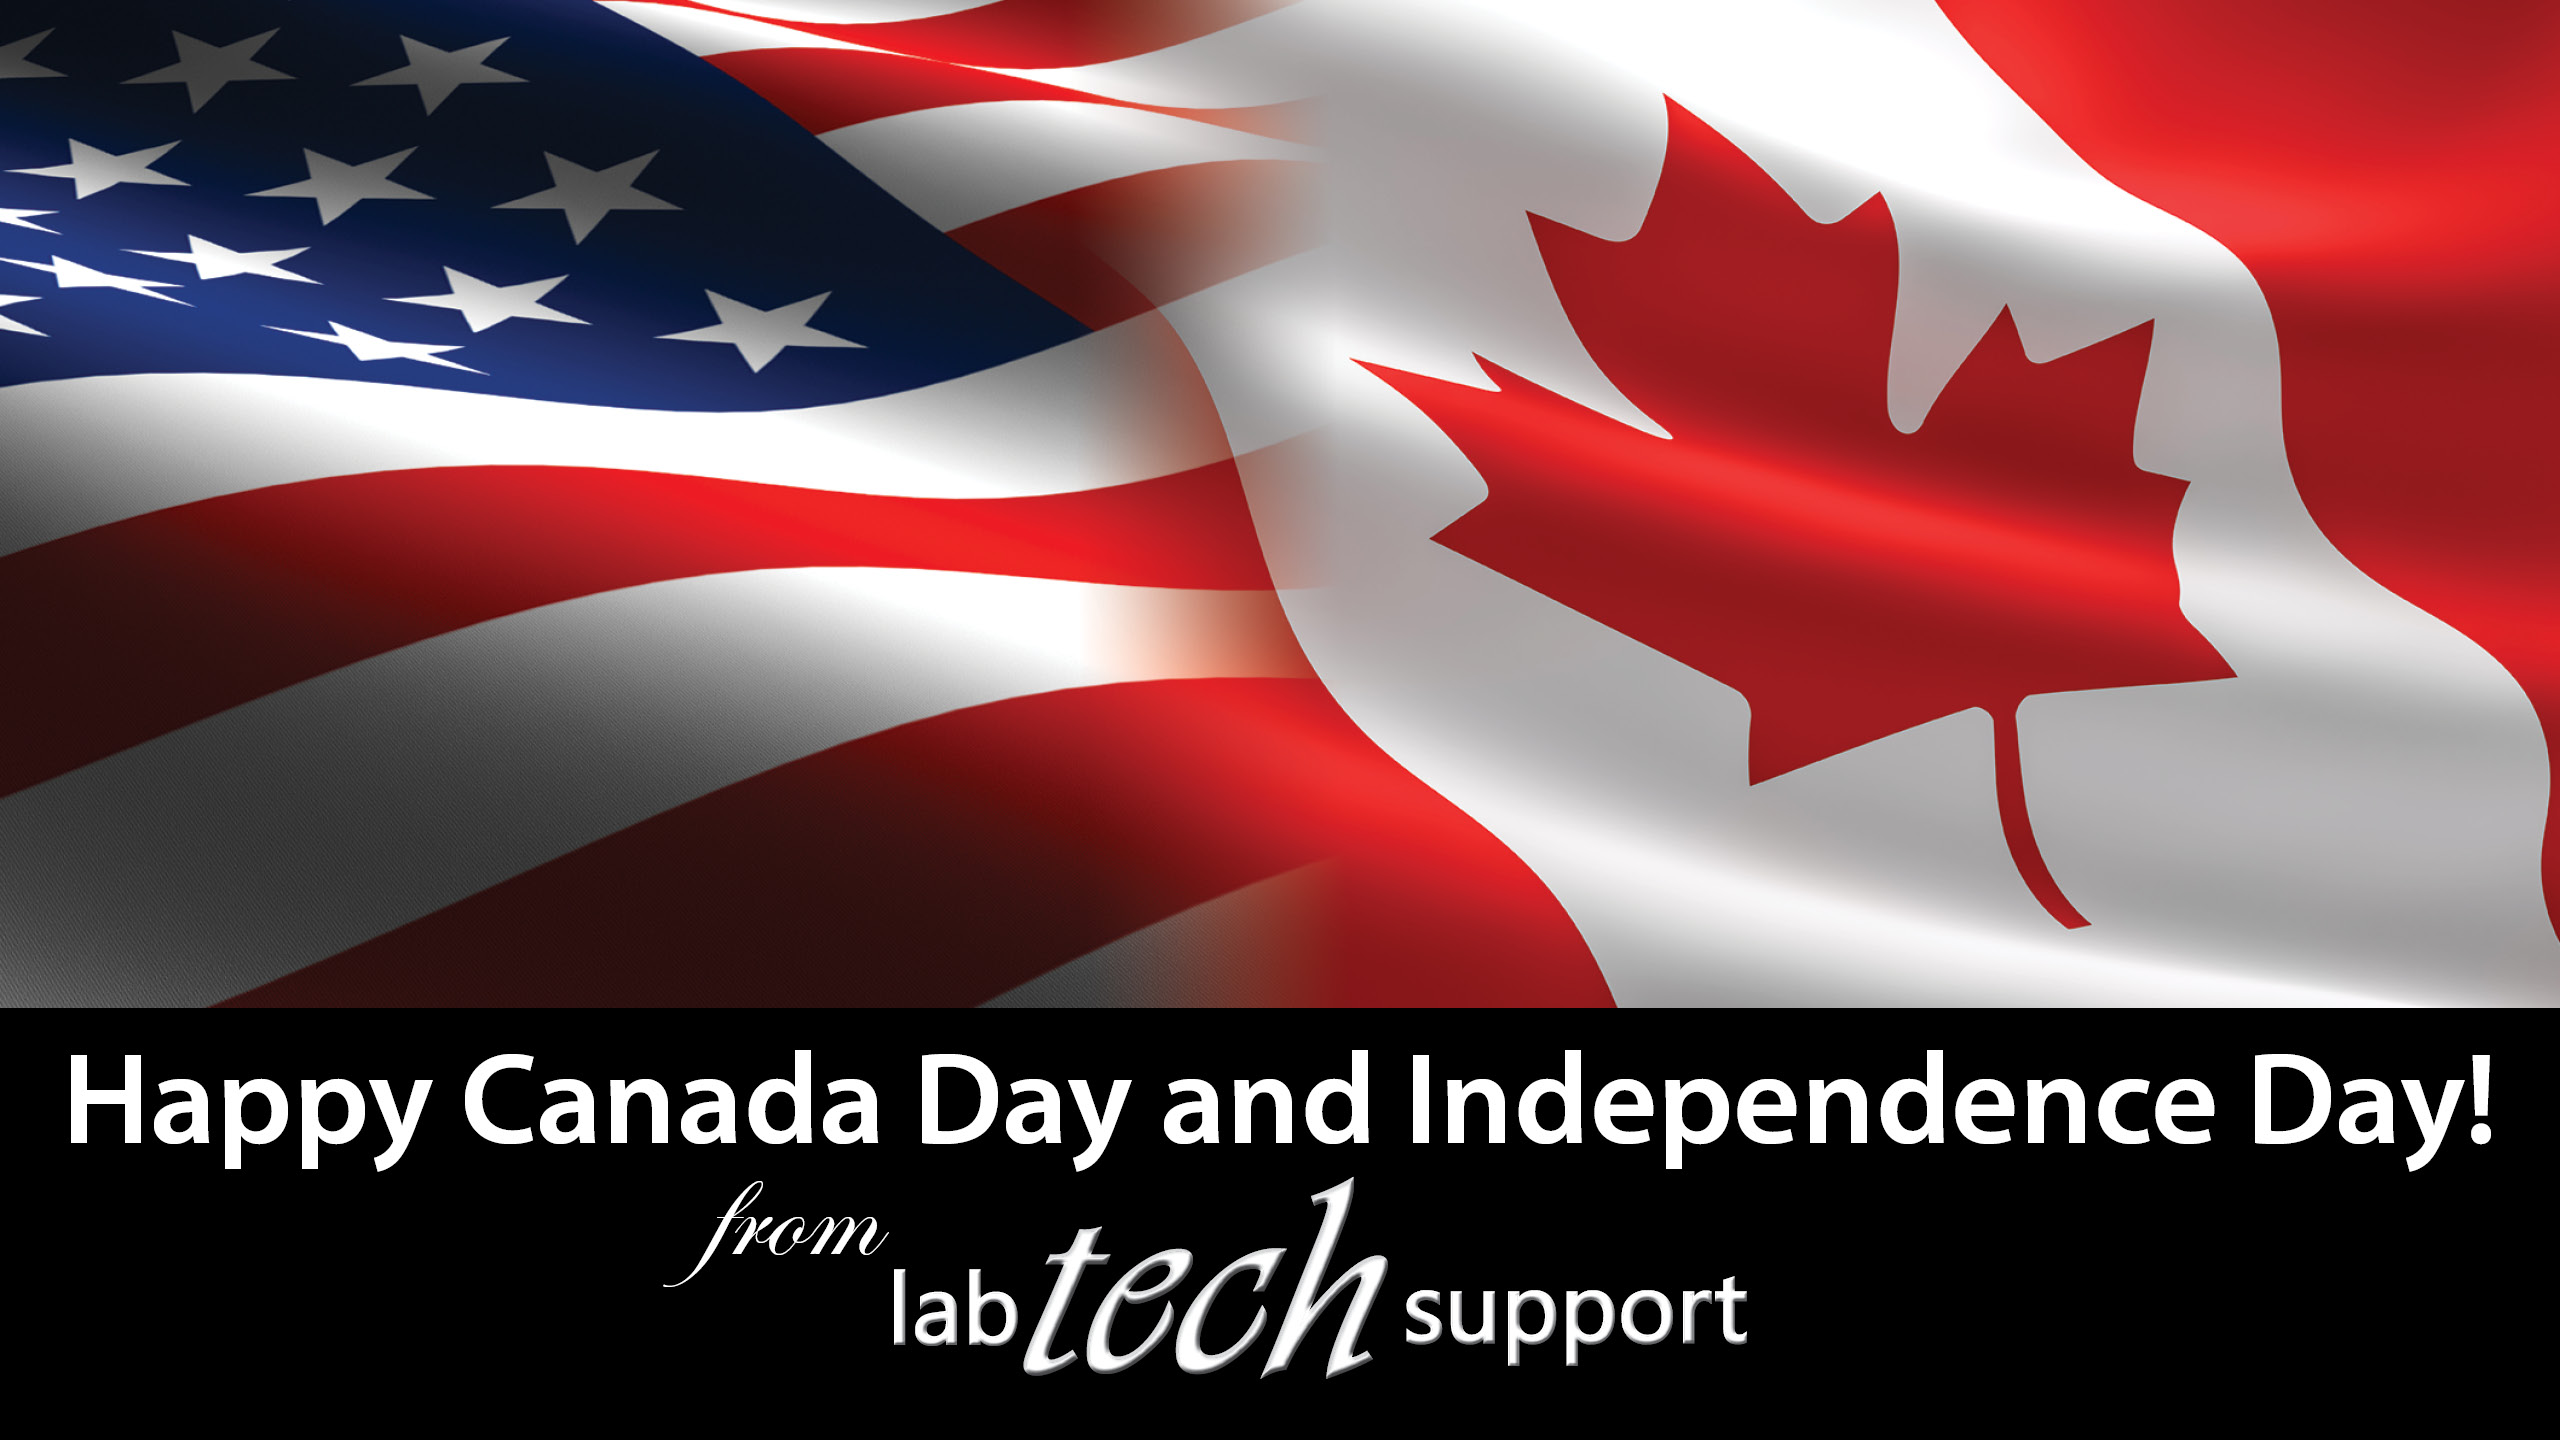 To all of our customers and friends north and south of the 49th